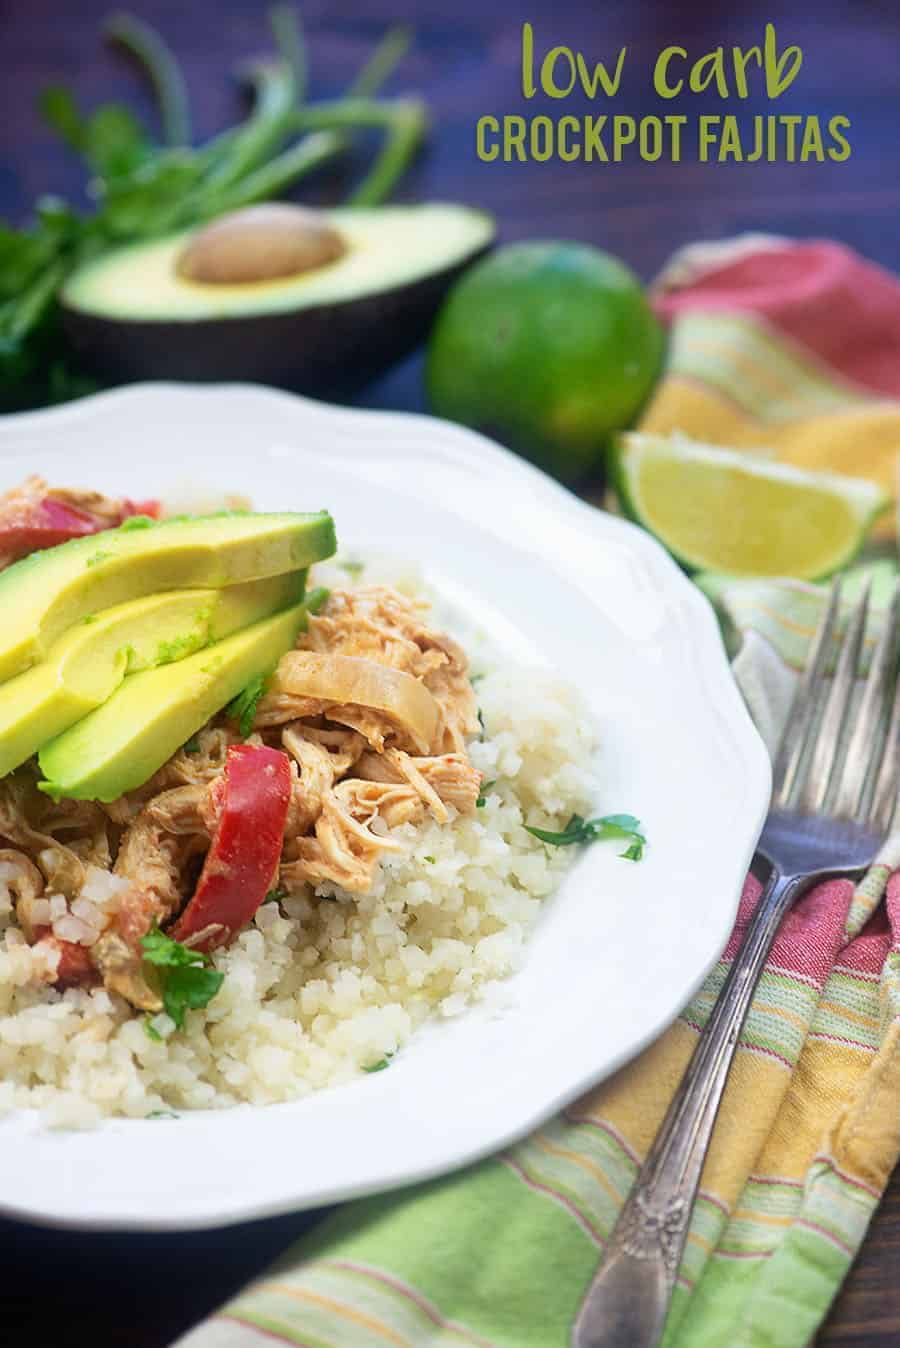 Low carb crockpot chicken fajitas! Serve these over cauliflower rice for yummy low carb Mexican night! #lowcarb #keto #chicken